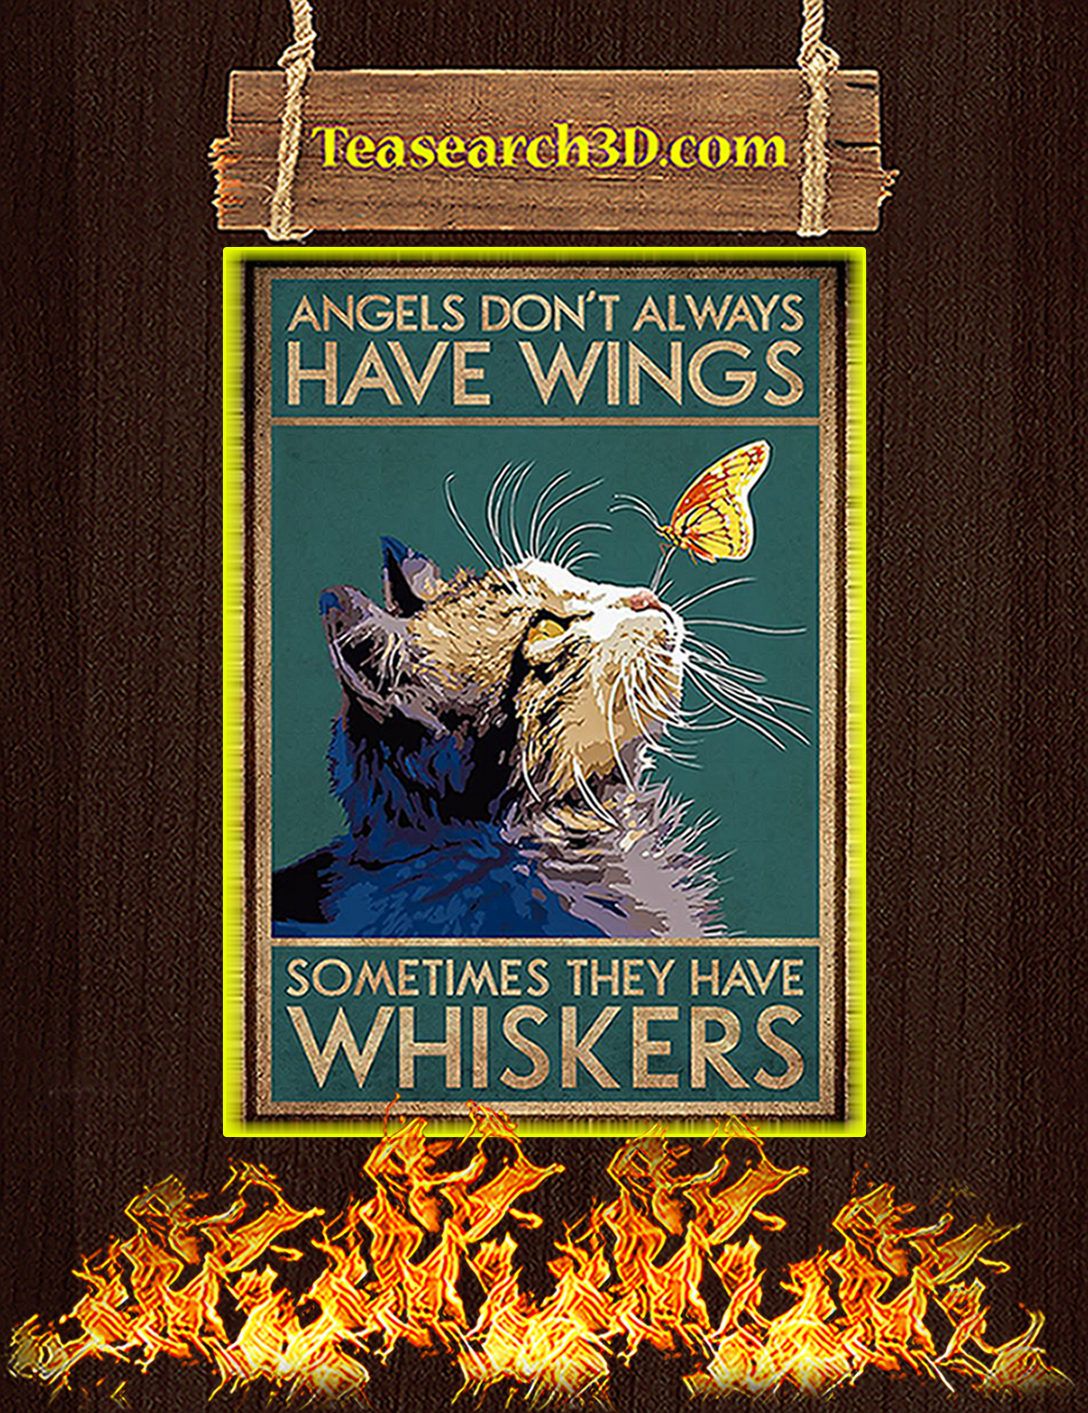 Cat Angels don't alway have wings sometimes they have whiskers poster A2